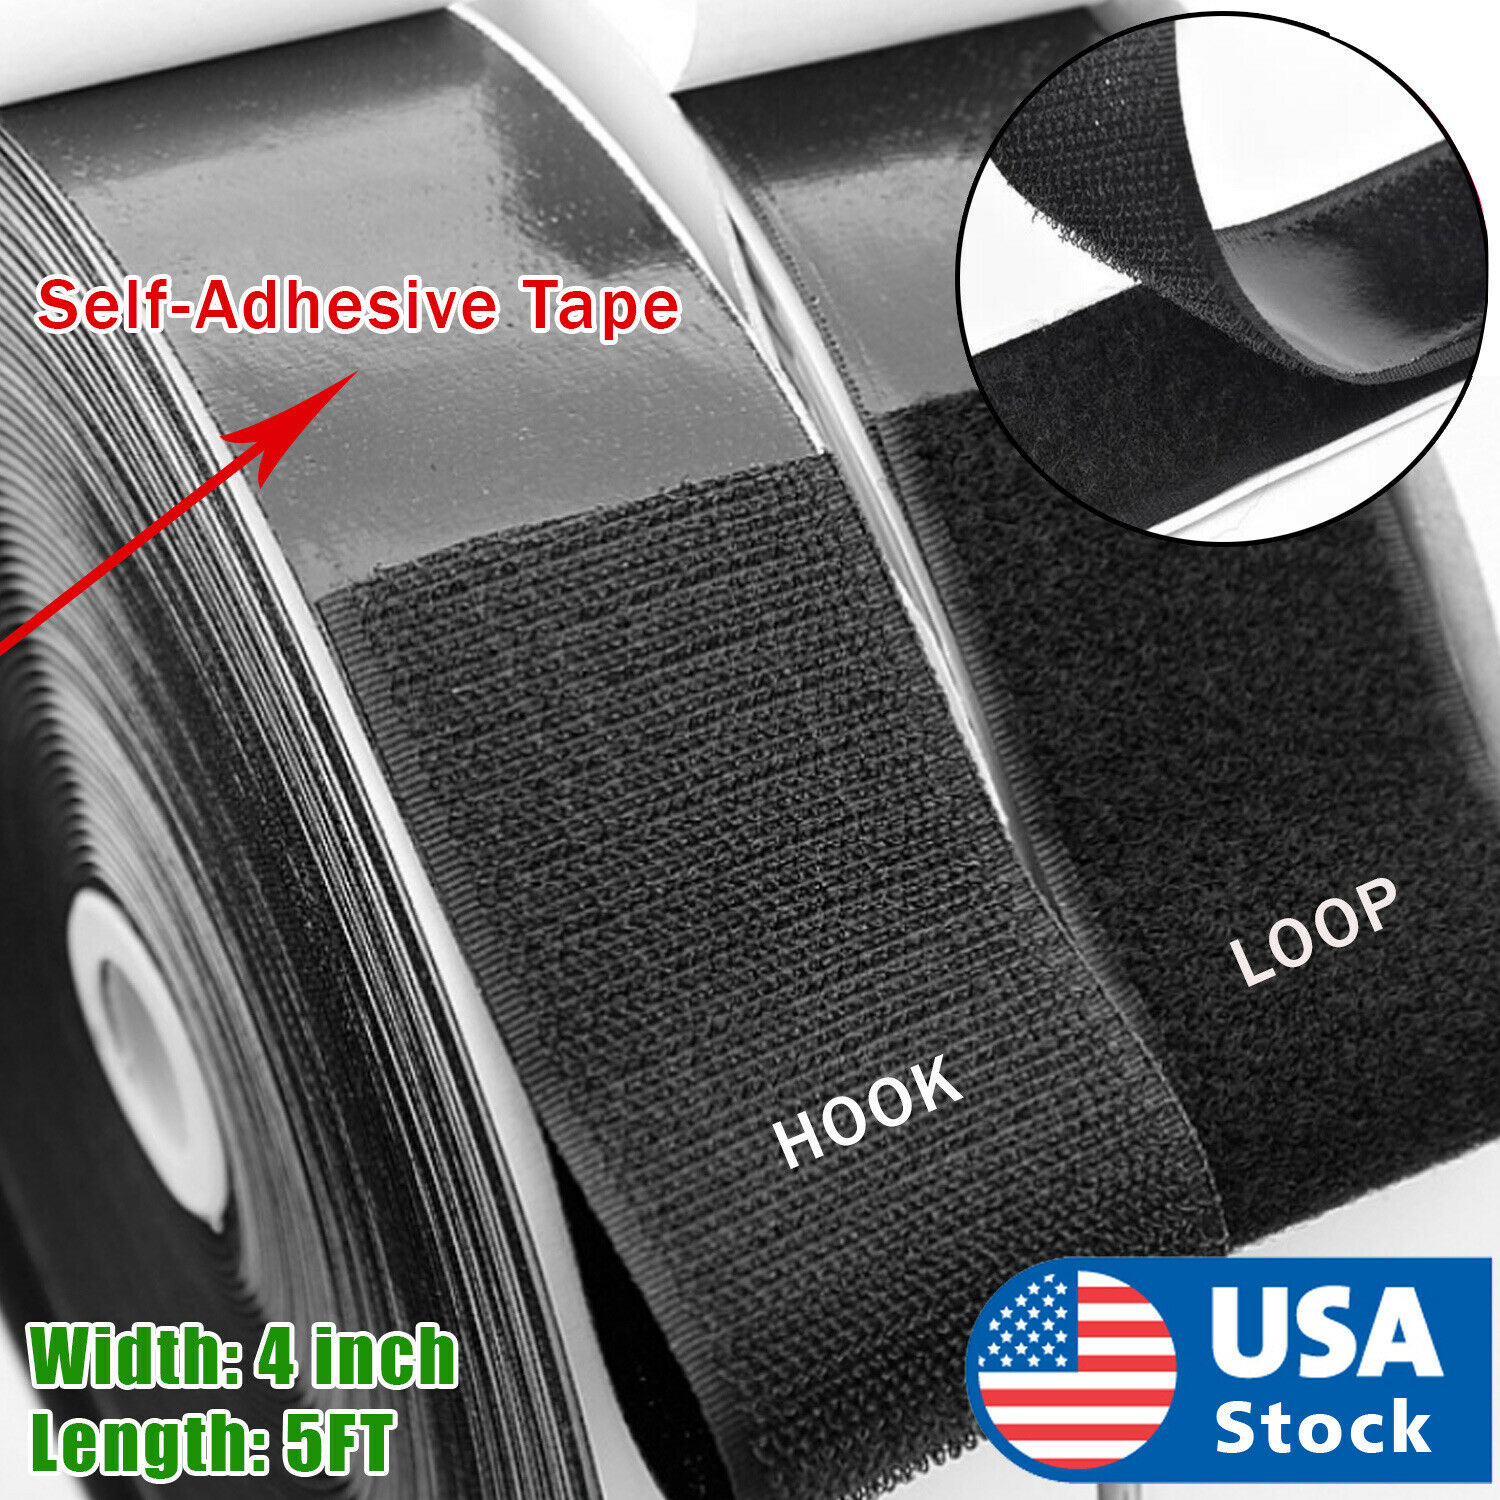 4 inch 5 Feet Self Adhesive Tape Hook and Loop Fastener Extra Sticky Back USA Closures & Connectors